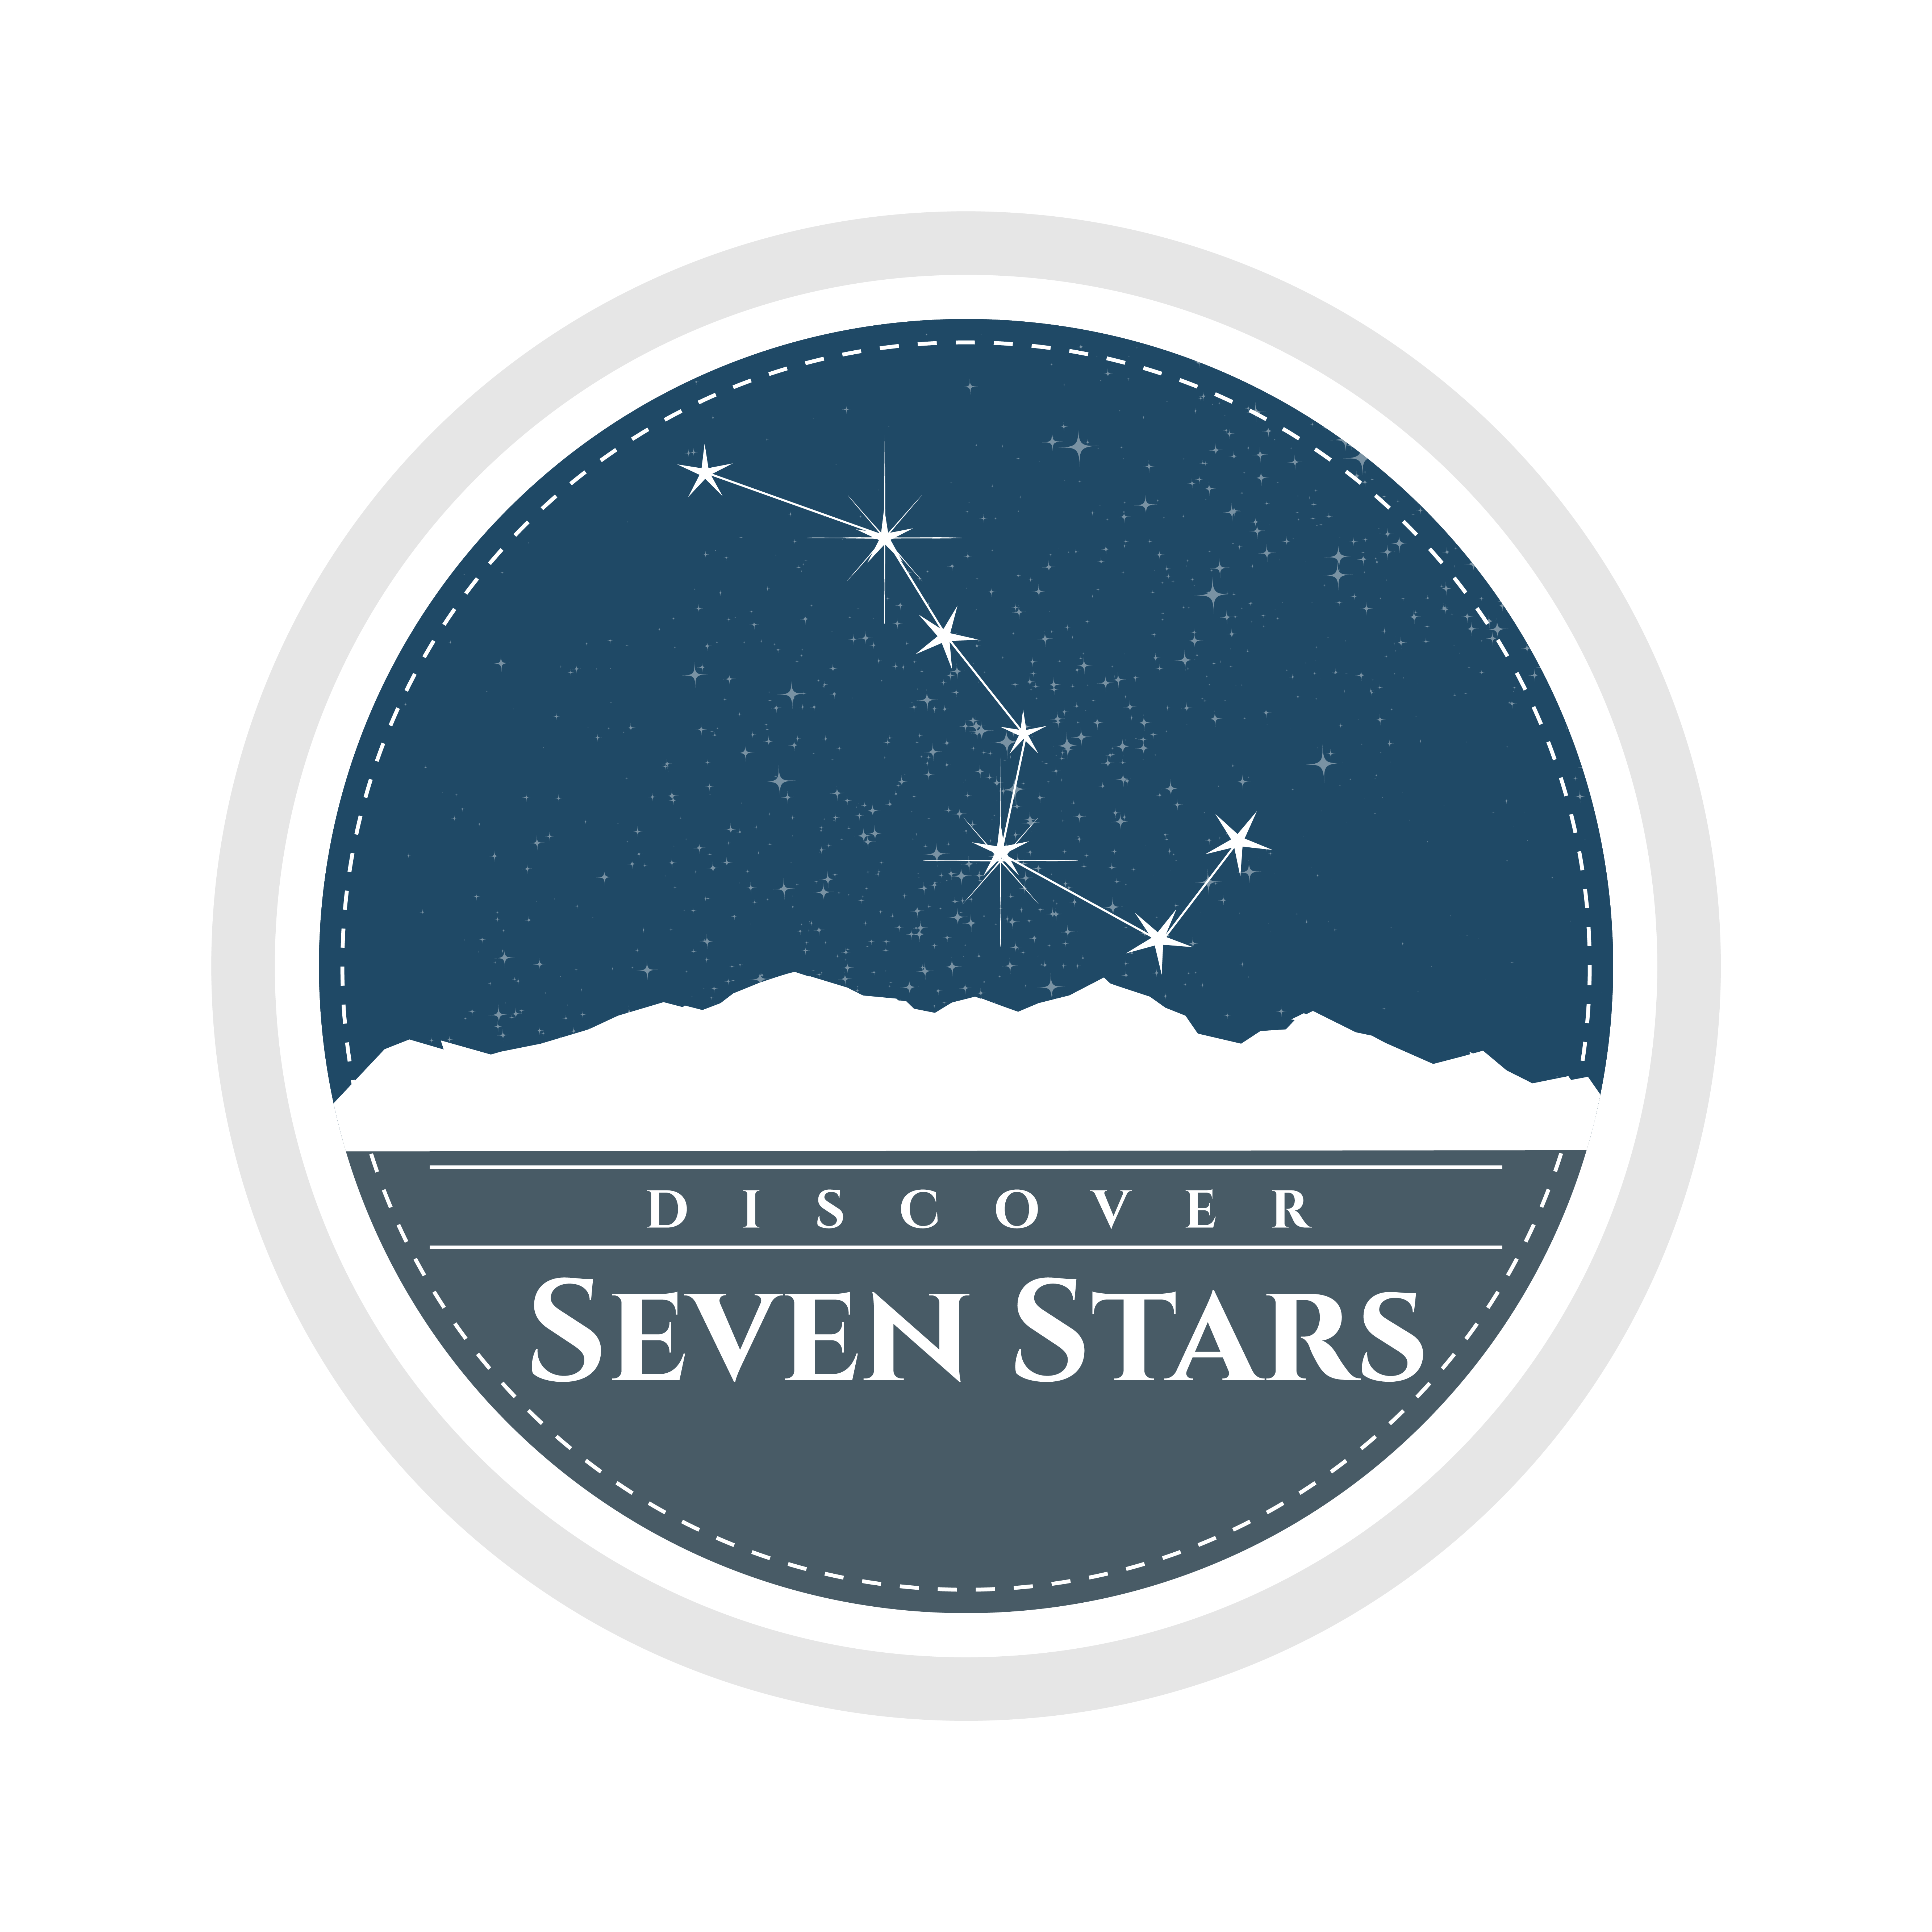 Discovery Seven Stars logo